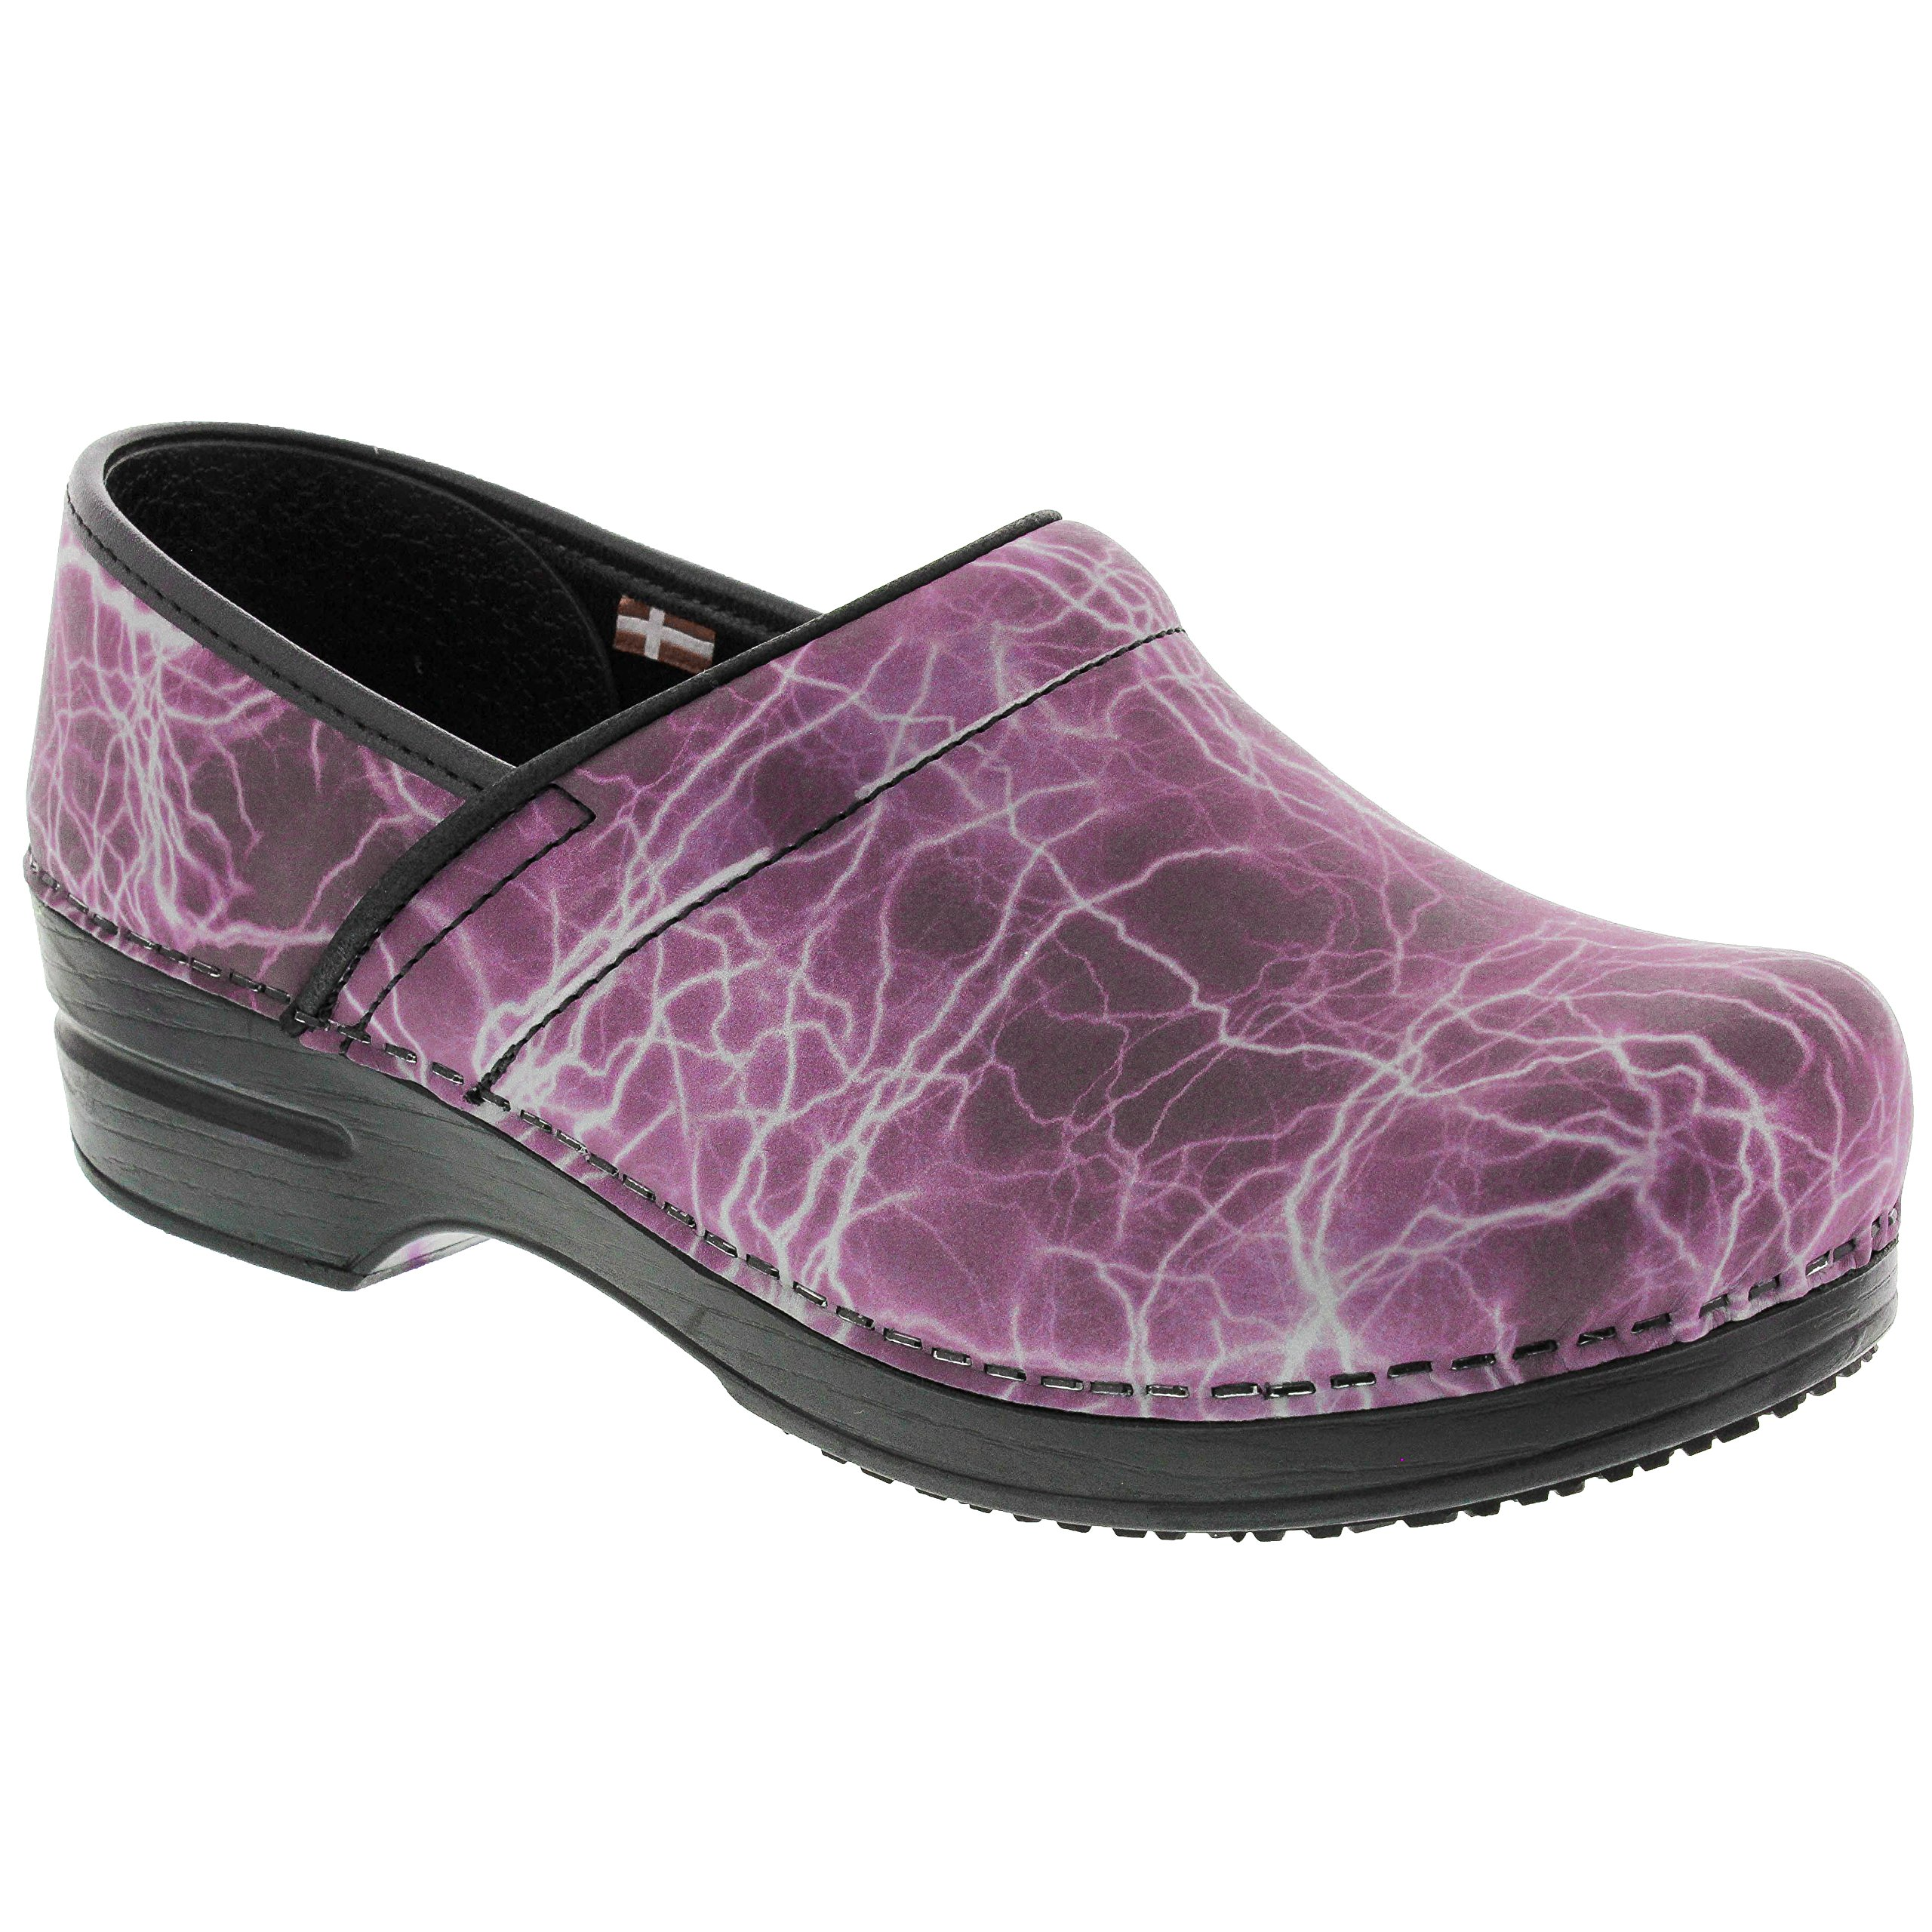 Sanita Women's Smart Step Pro. Monsoon Clog, Fuchsia, 41 M EU (10 US) by Sanita